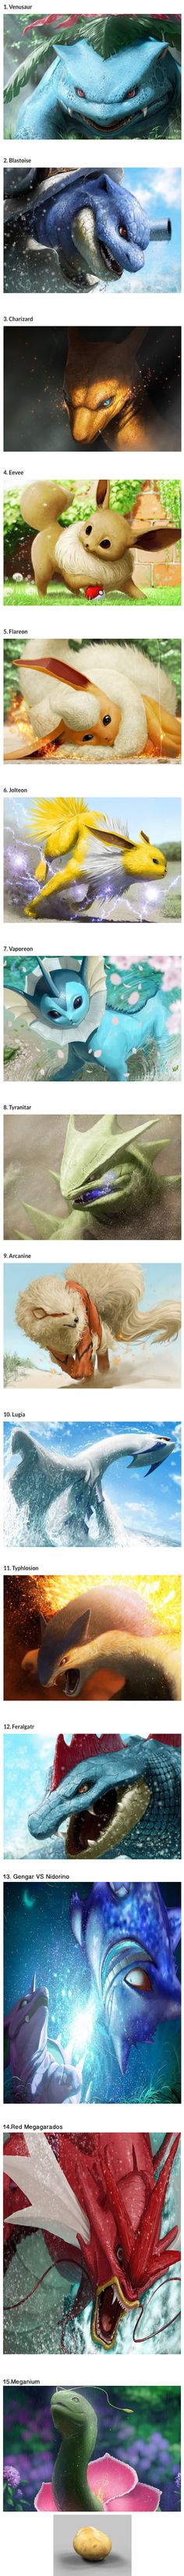 Pokemon realistici By...artista giapponese